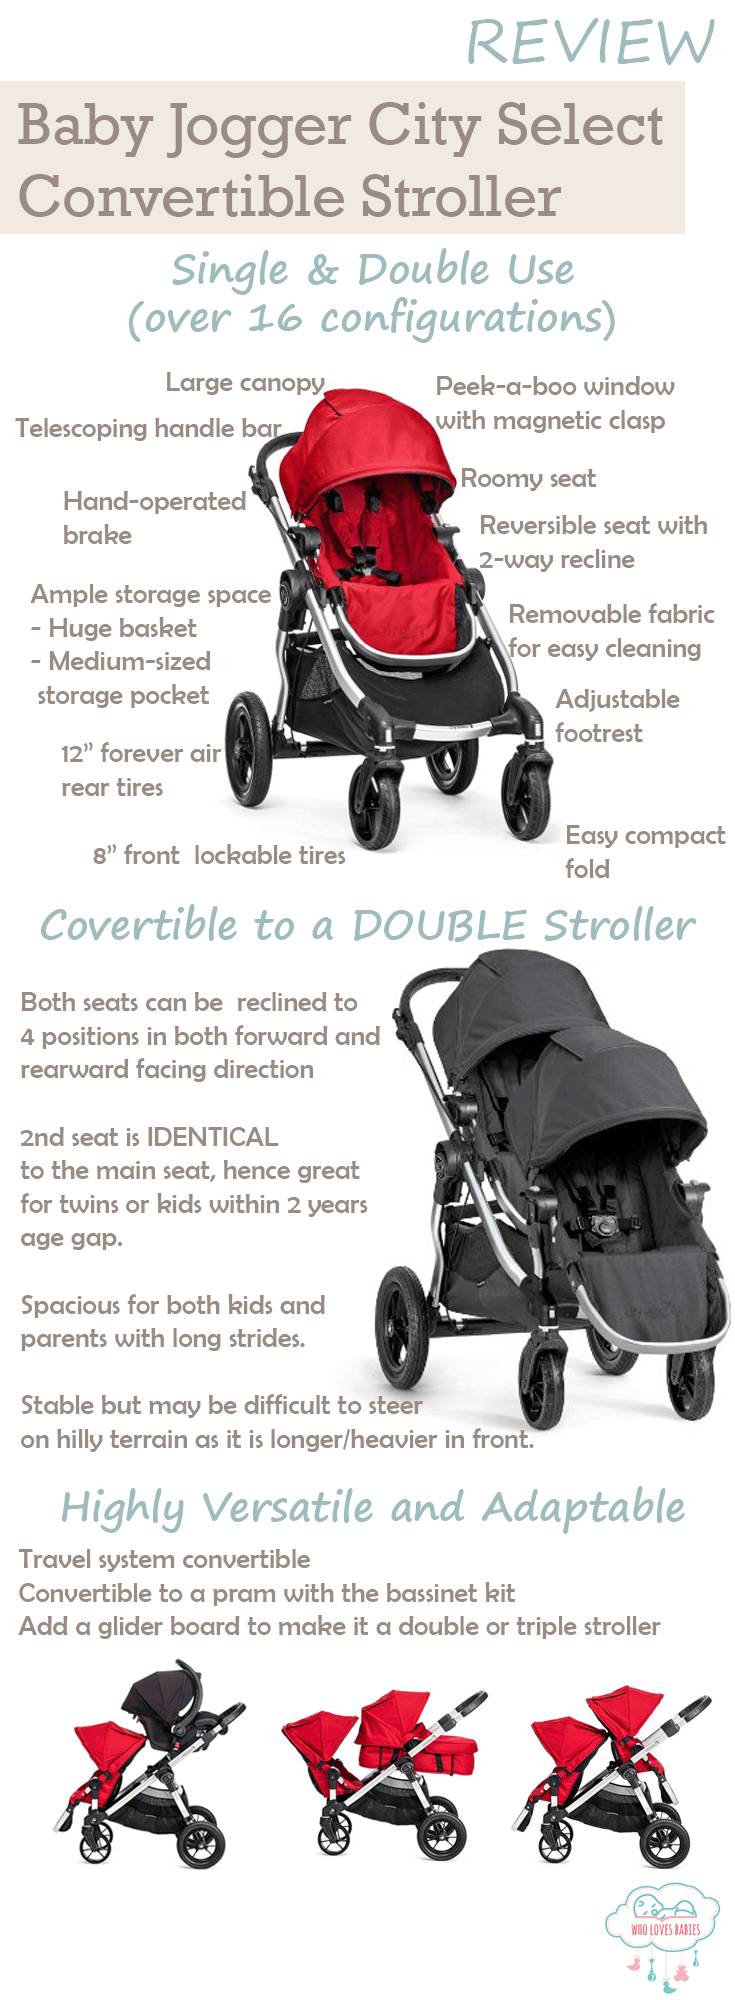 What We Like About The Baby Jogger City Select